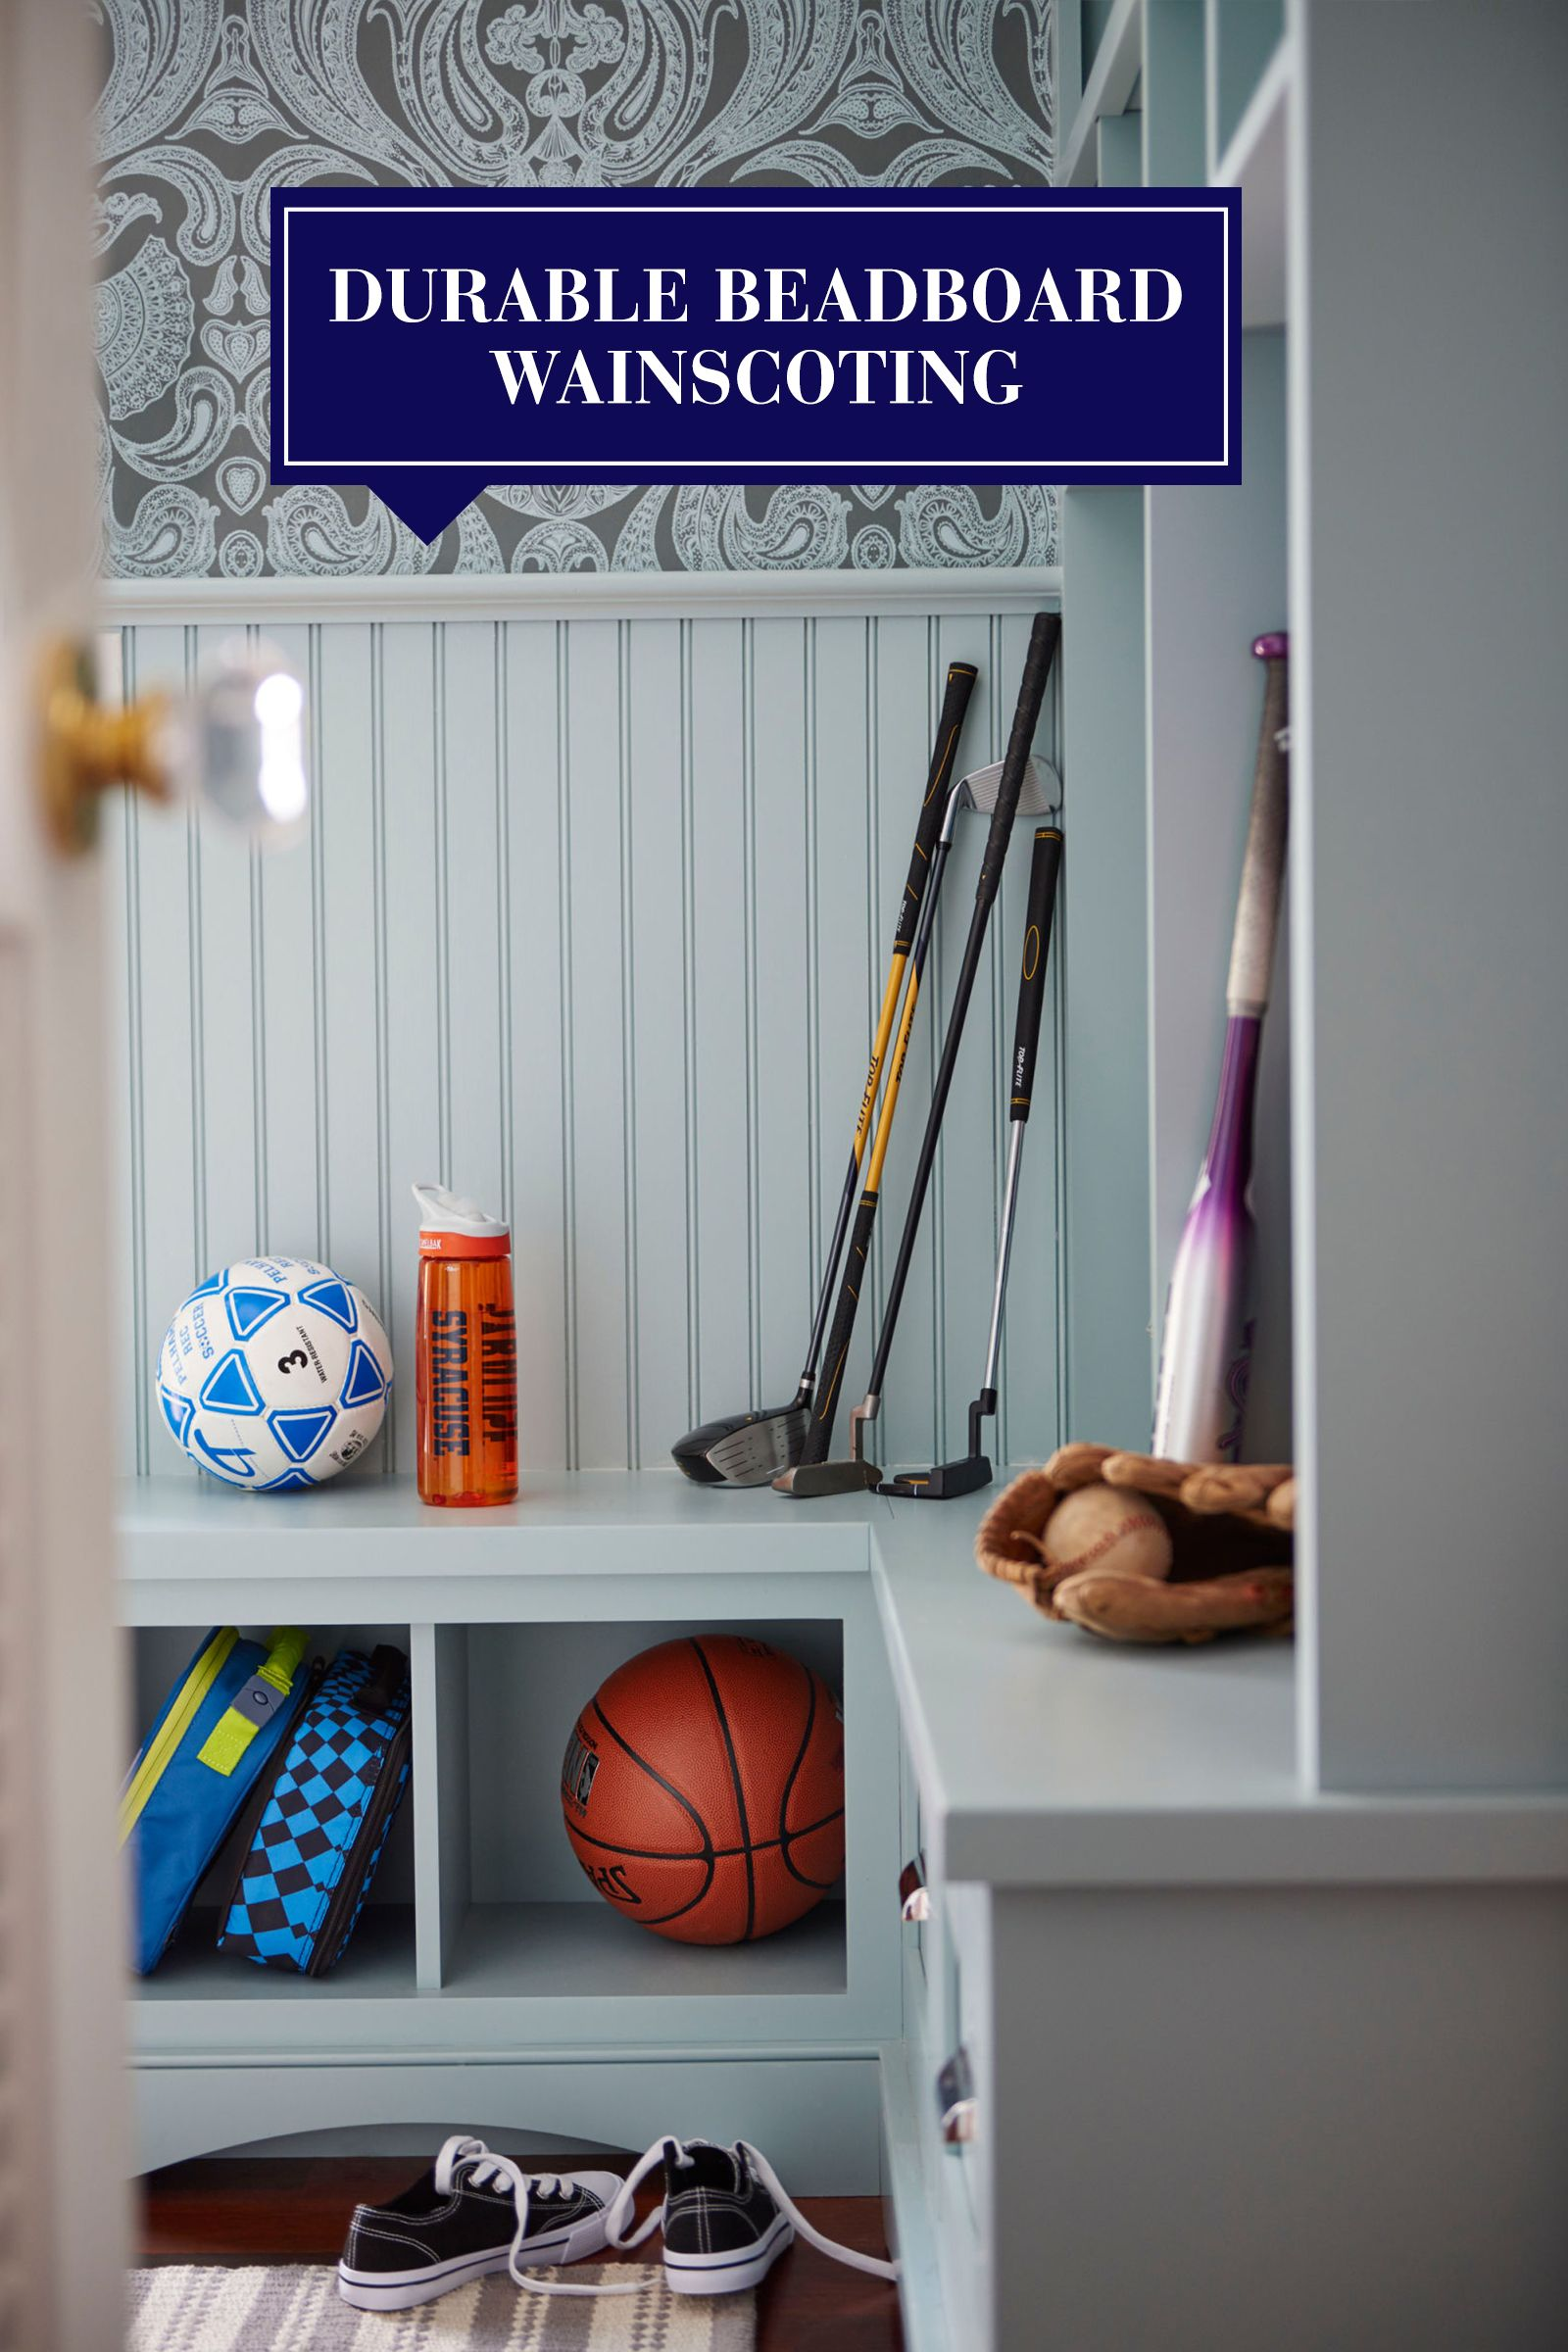 """<p>With an uptick in afterschool activities, the cubbies and bench become home to a plethora of sports equipment. When designing a mudroom, consider a wall treatment like beadboard wainscoting, which withstands daily wear and tear better than drywall.</p><p><em>Shop similar lunchboxes at <a href=""""http://www.skiphop.com/product/zoosafetyharness.html"""" target=""""_blank"""">skiphop.com</a></em><br></p>"""